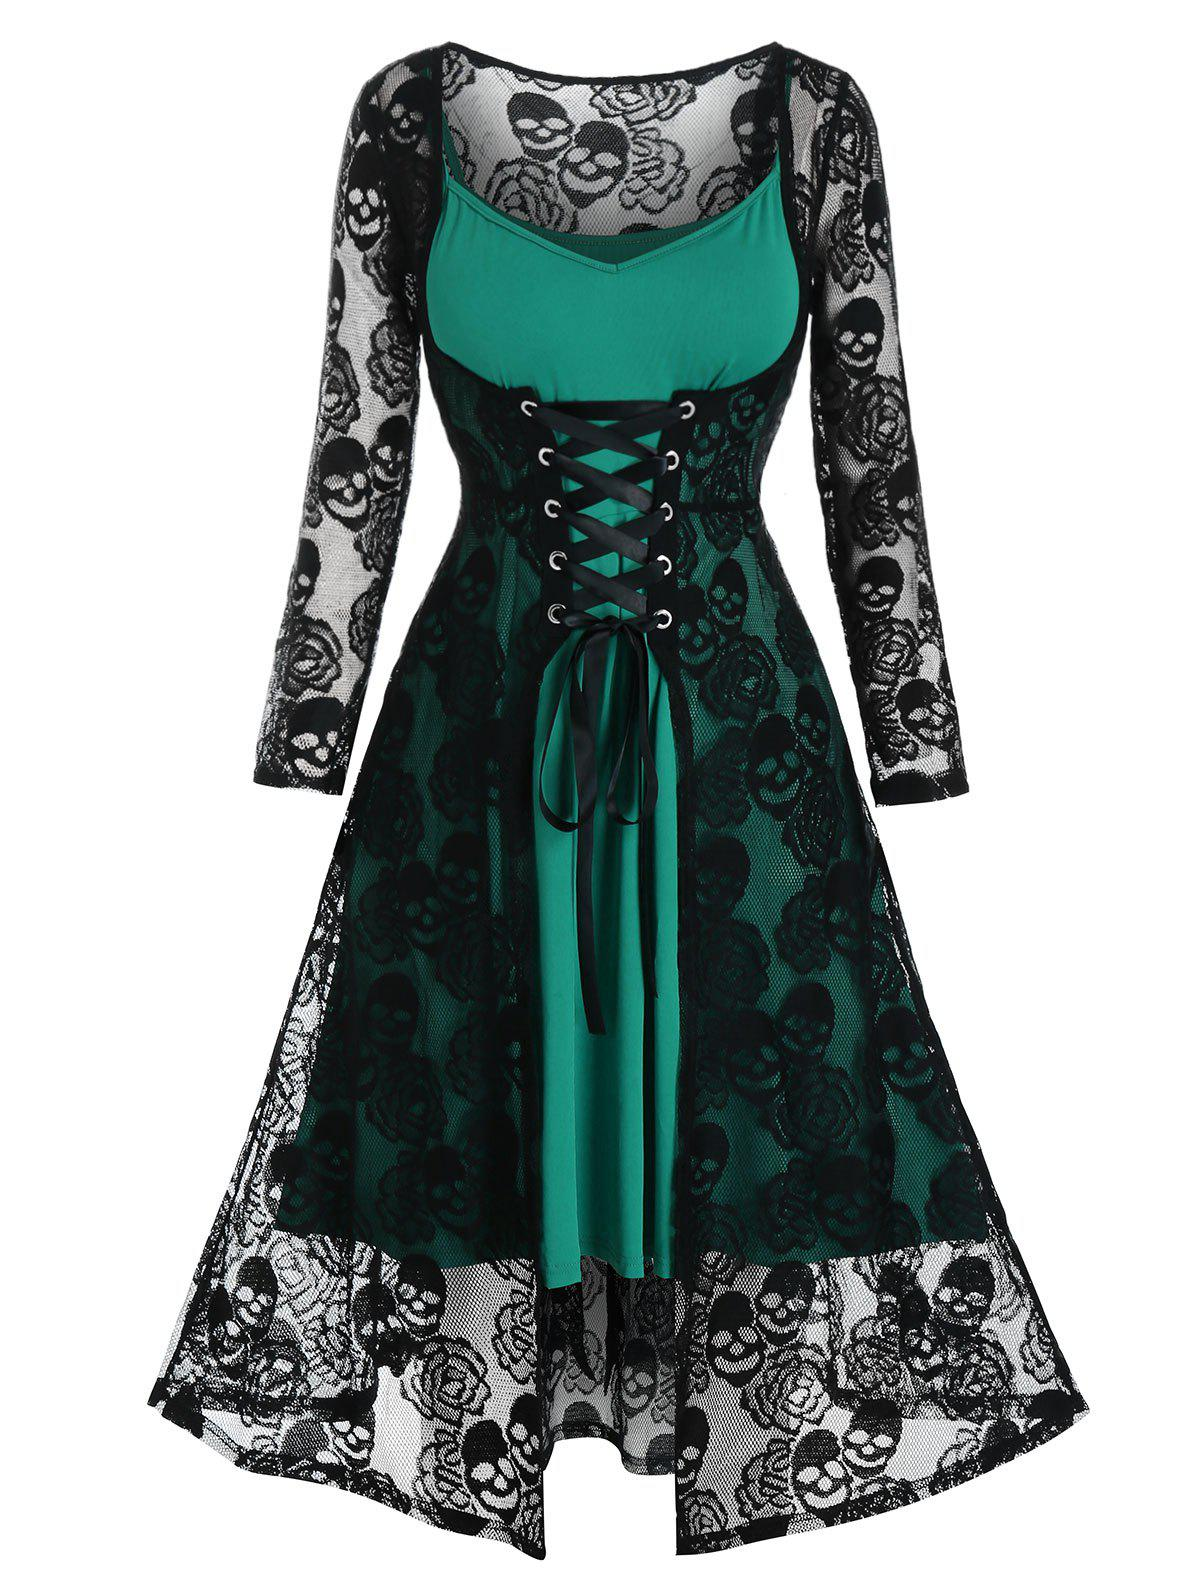 Plus Size Lace Skull Lace-up Dress and Cami Dress Set - SEAWEED GREEN 2X